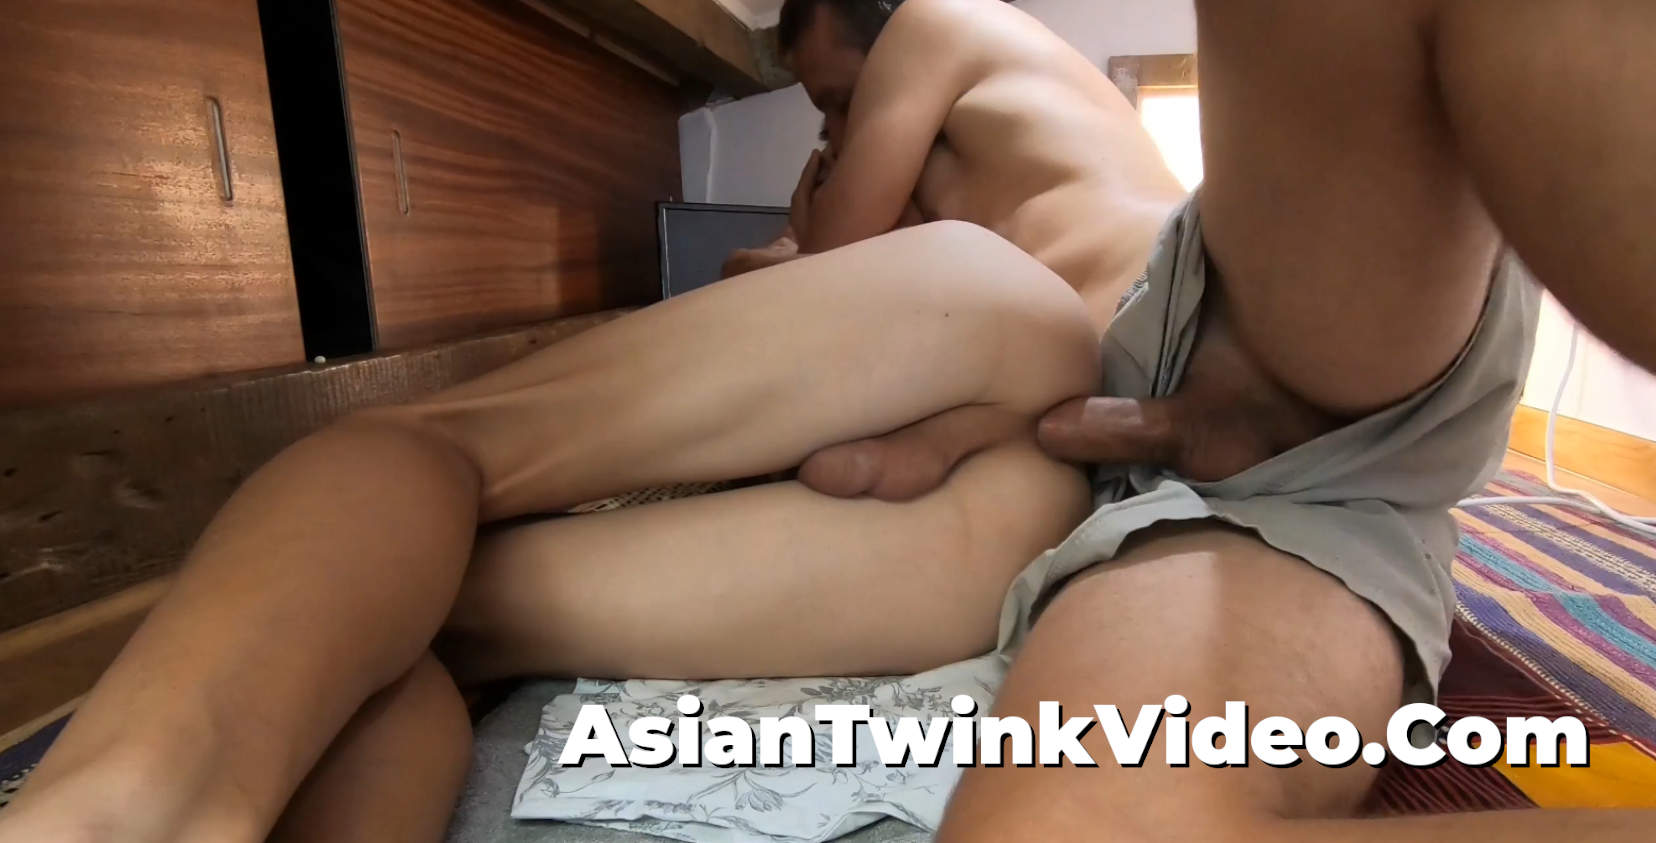 Dominating & Breeding a Young Asian Twink's Ass